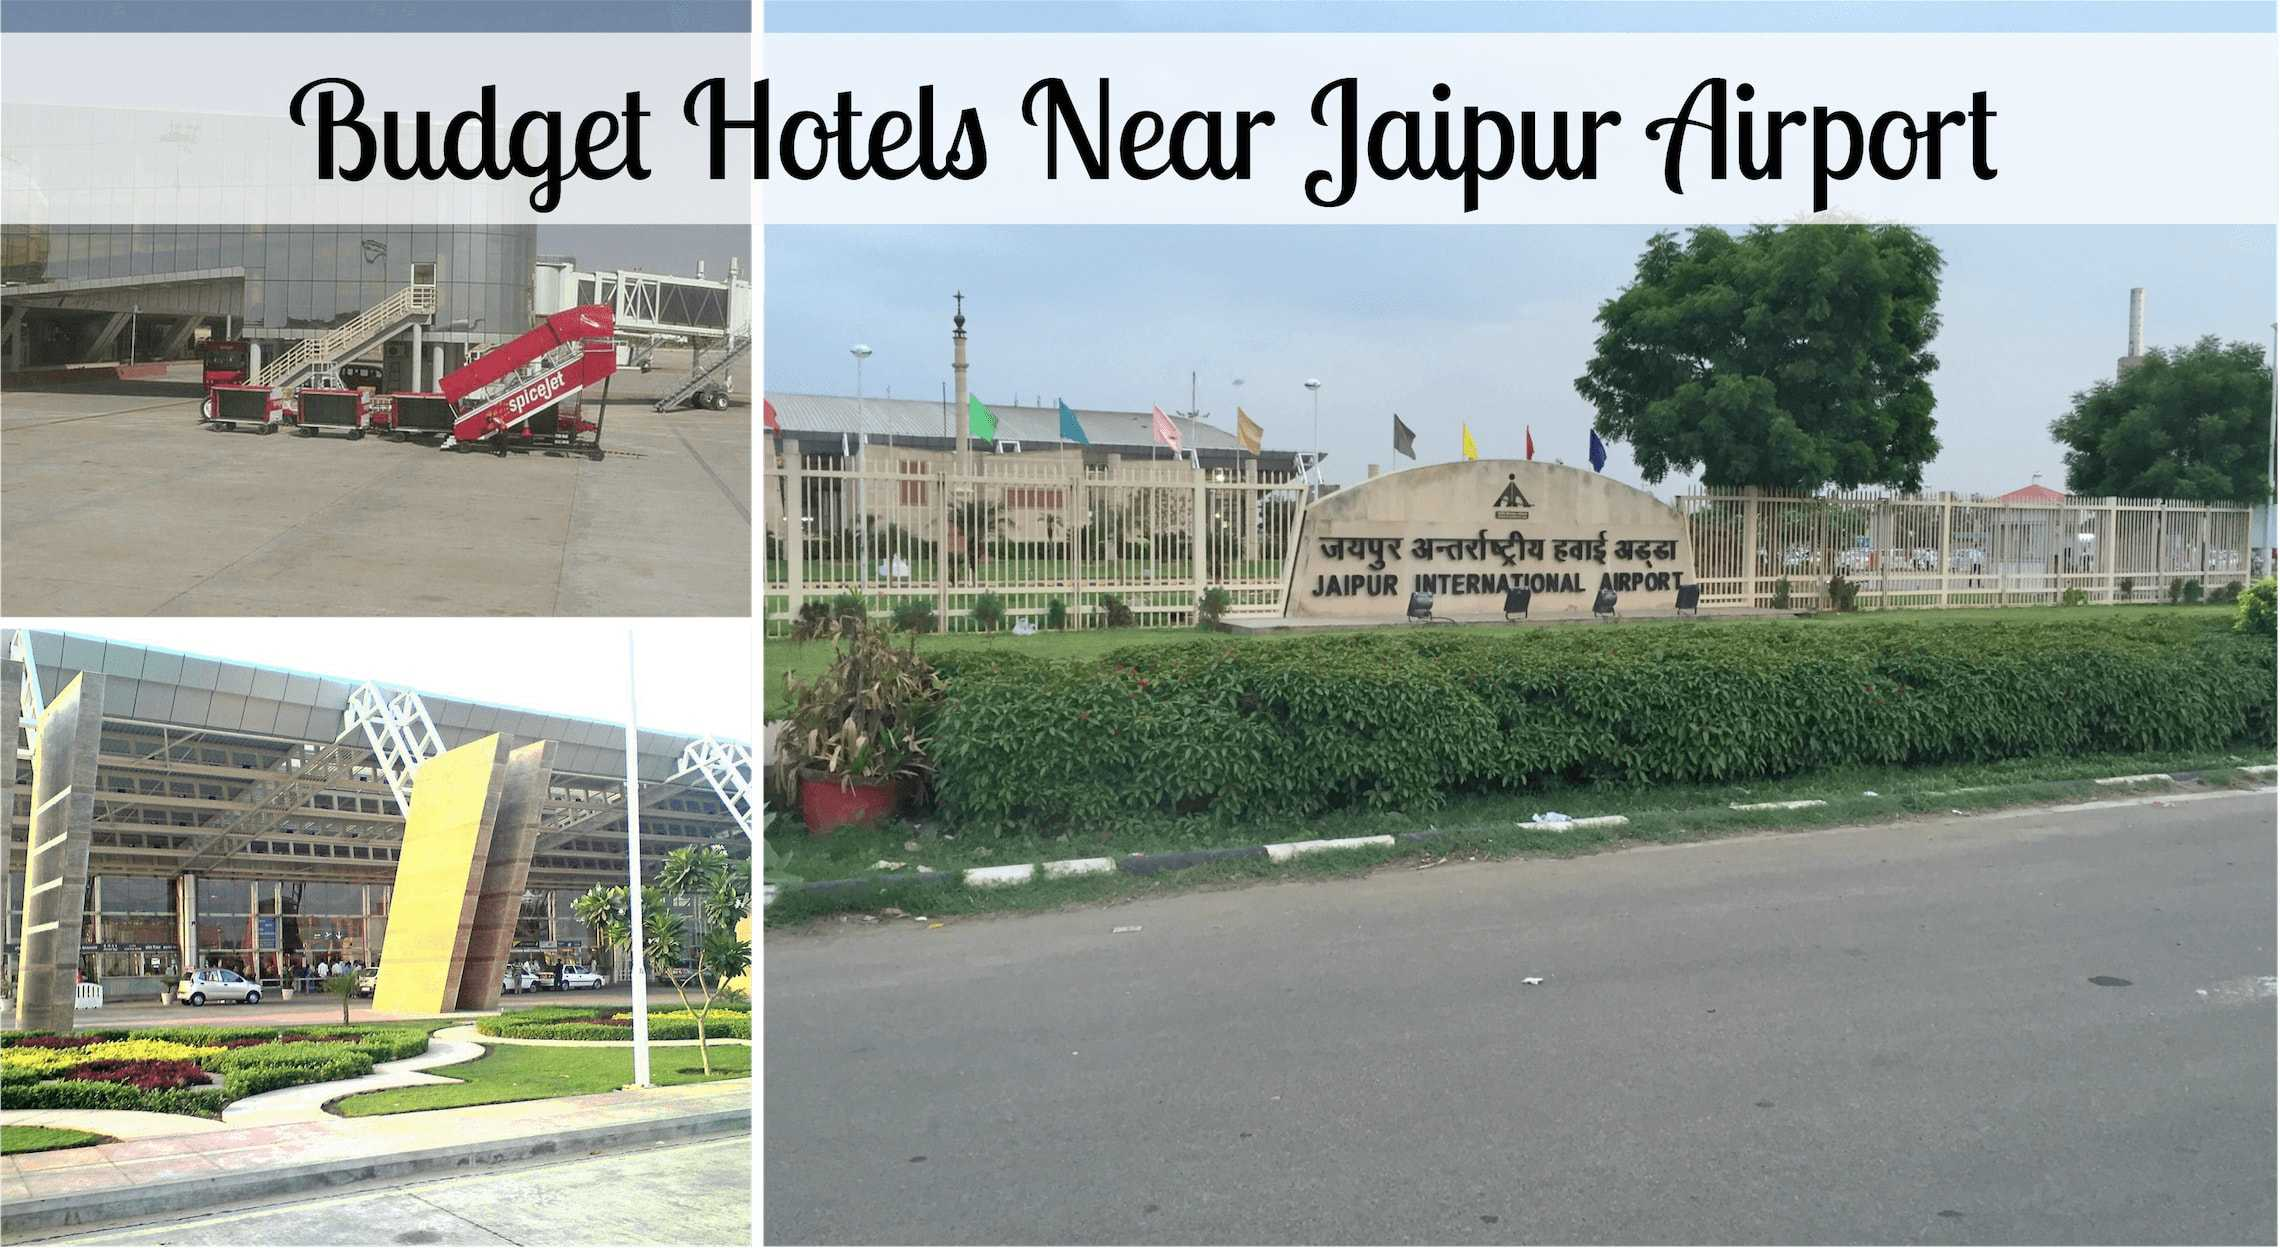 budget-hotels-near-jaipur-airport.